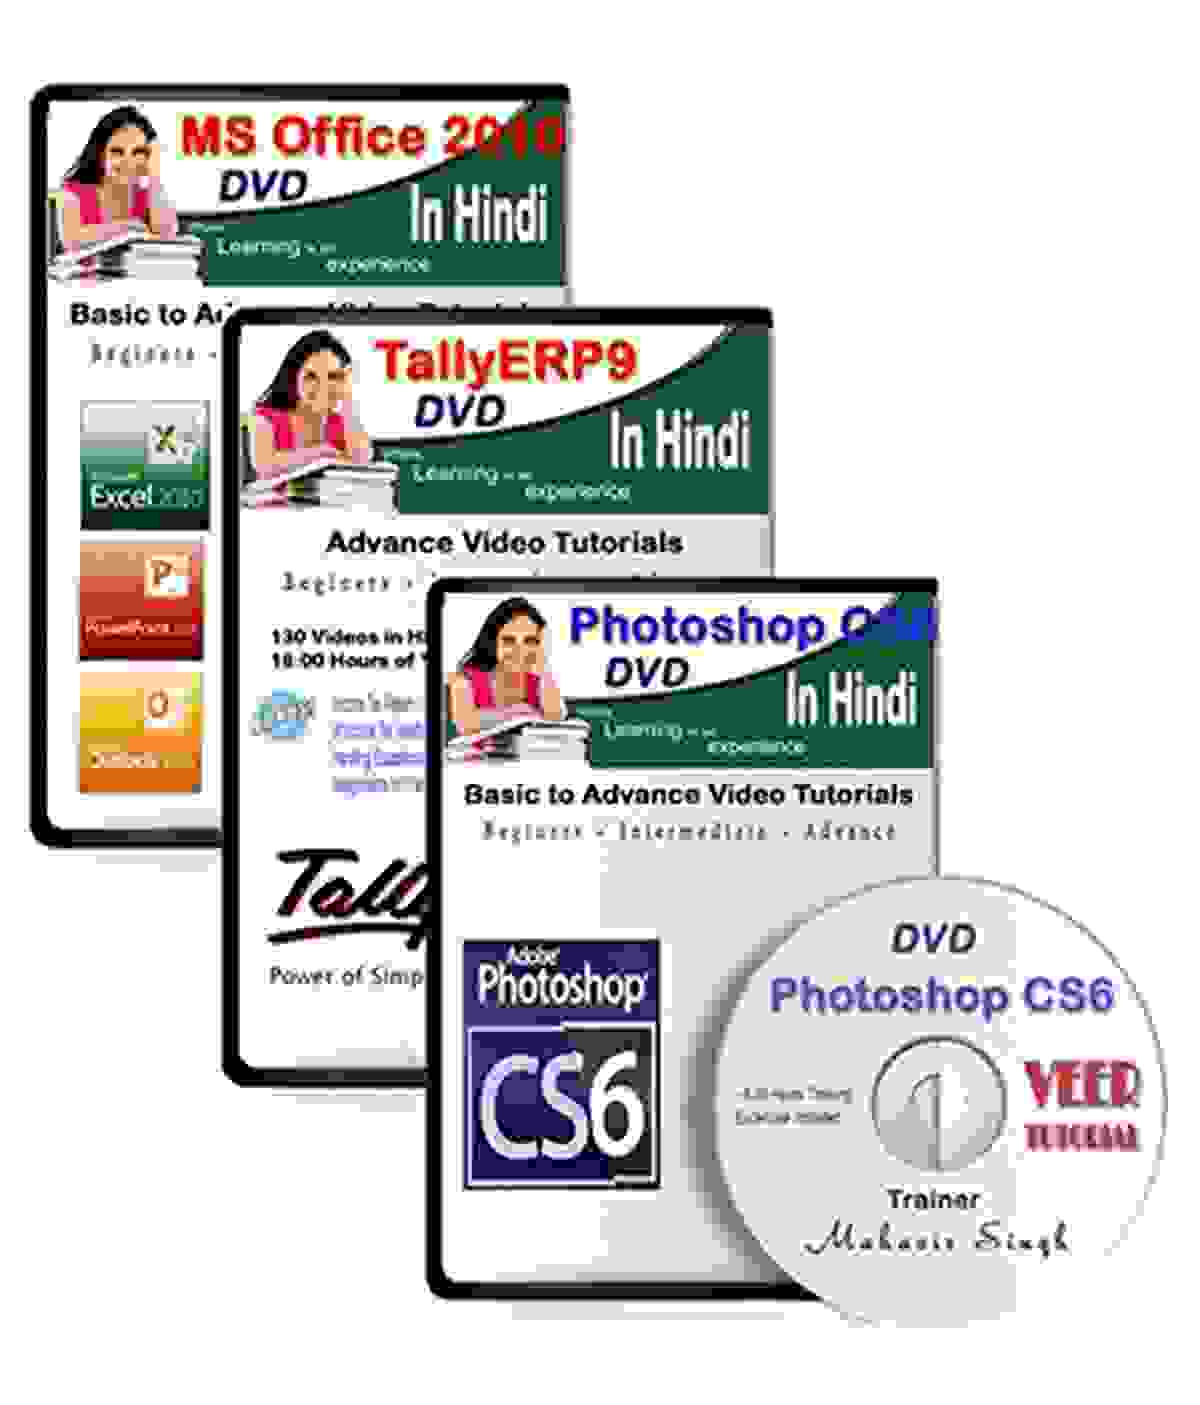 TallyERP9 + MS Office 2010 + Photoshop CS6 (34 Hrs Training, 282 Videos) in Hindi(DVD)